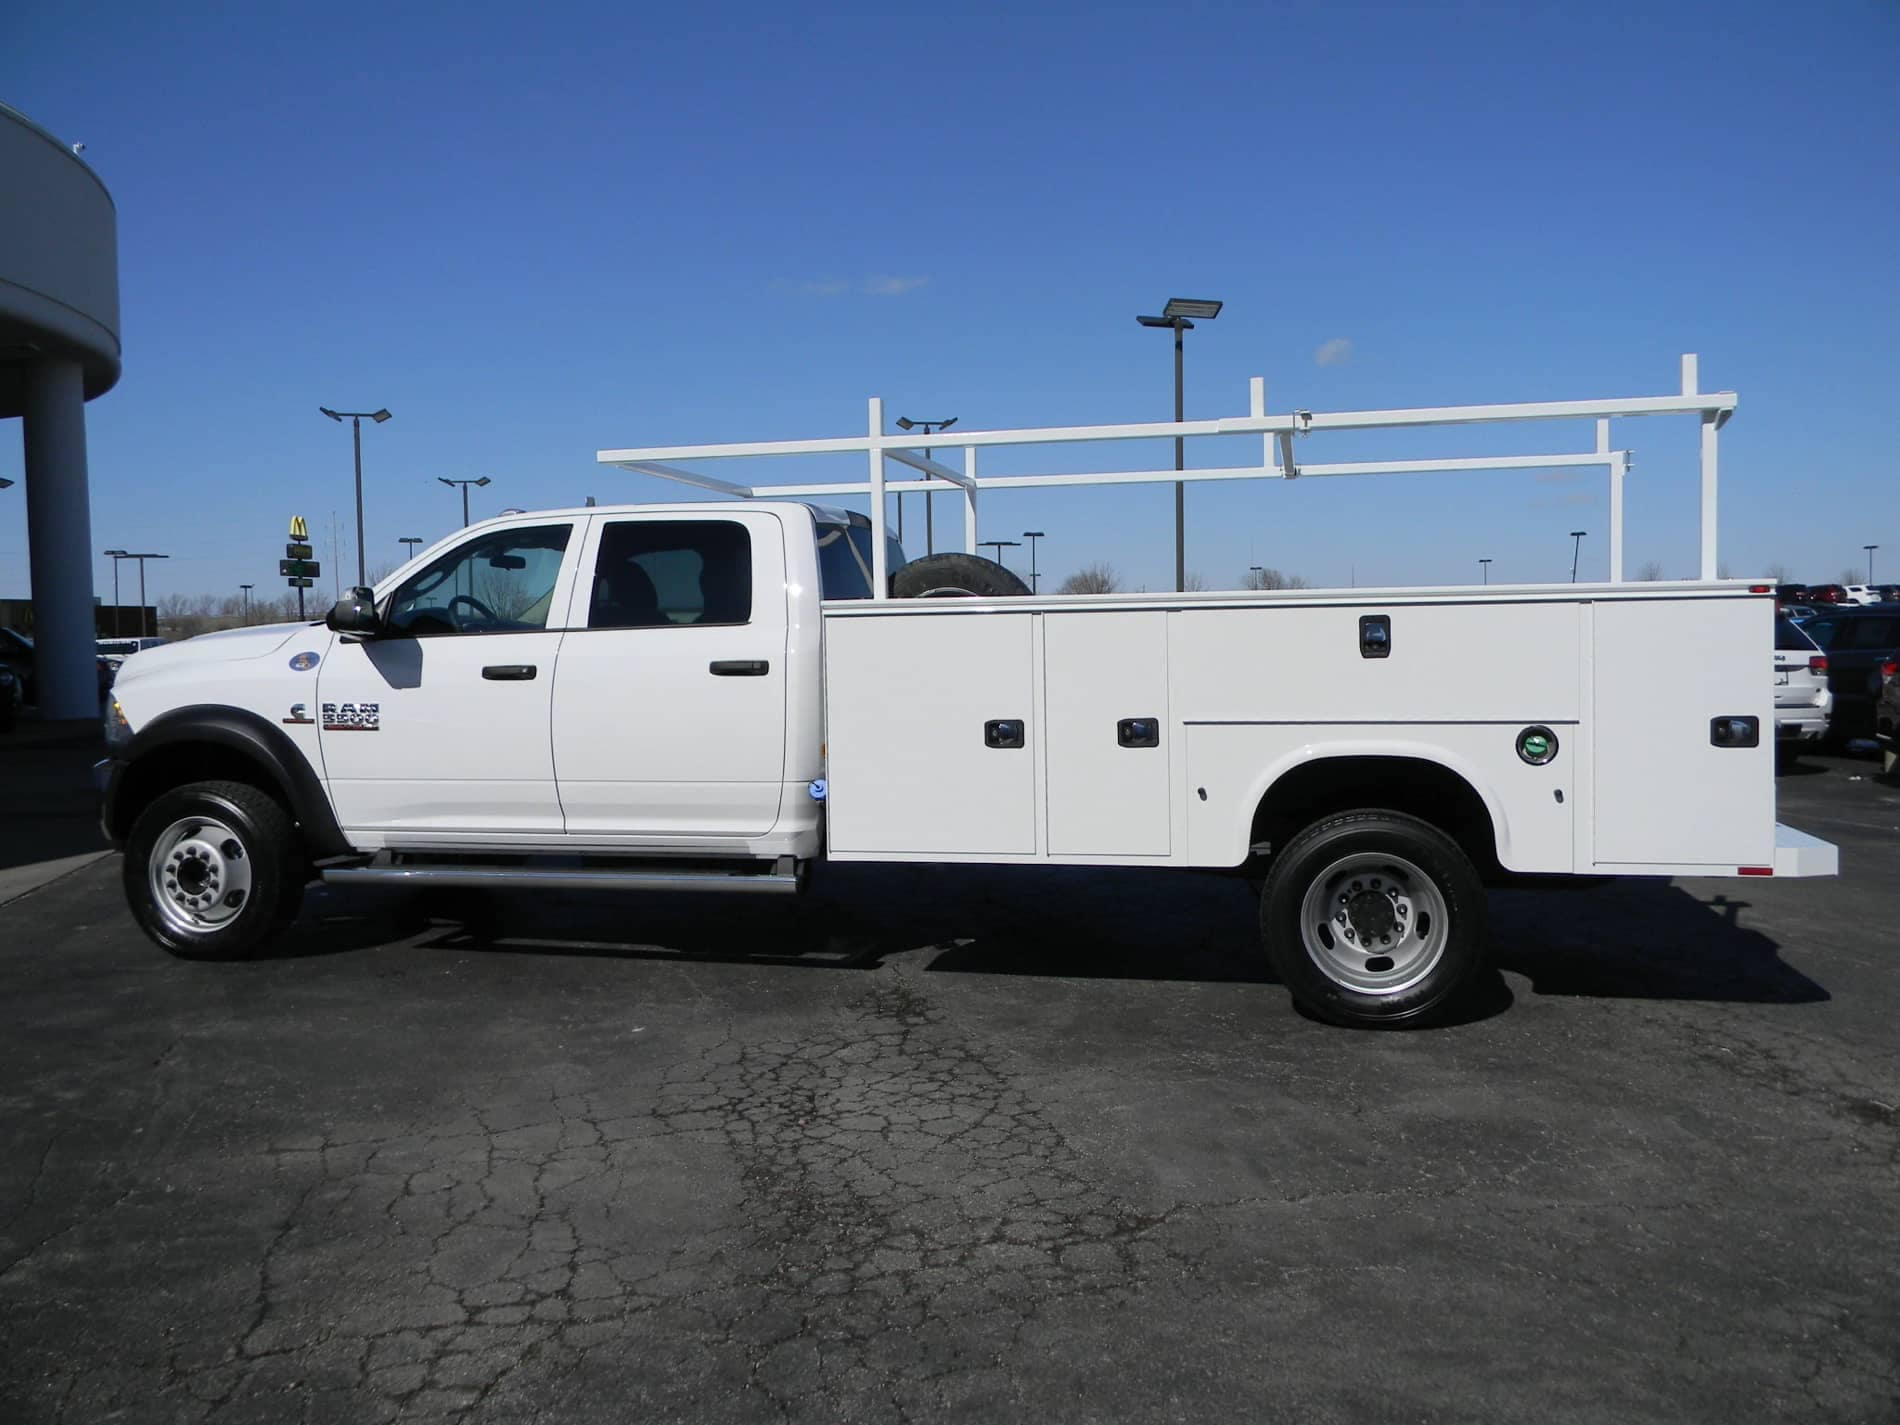 Truck at angle with upfit back